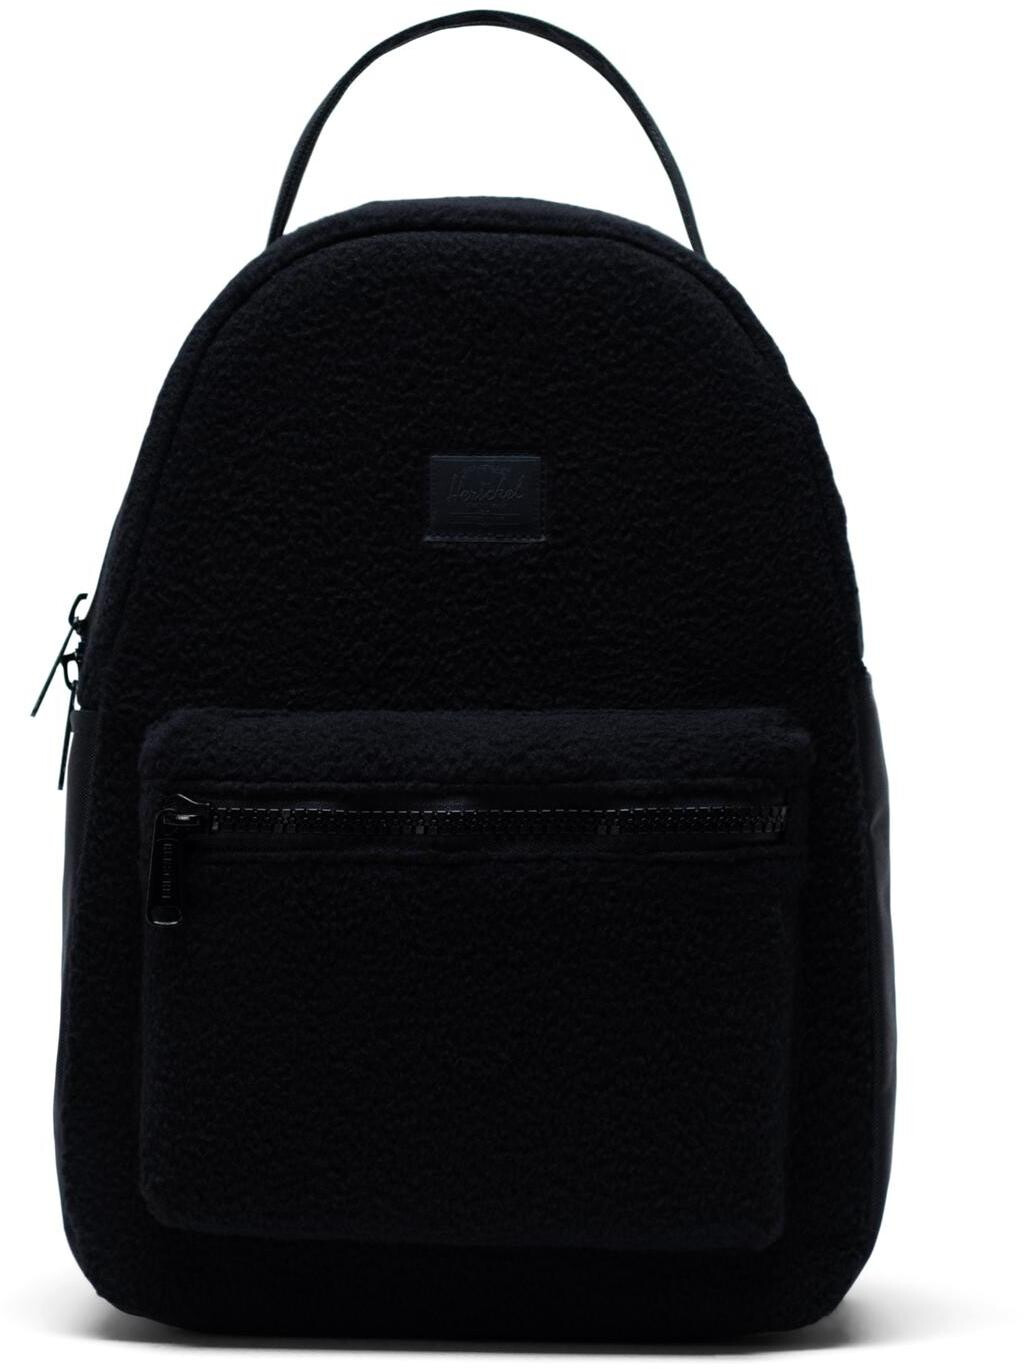 Herschel Nova Small Rygsæk 14l, black sherpa fleece (2019) | Travel bags